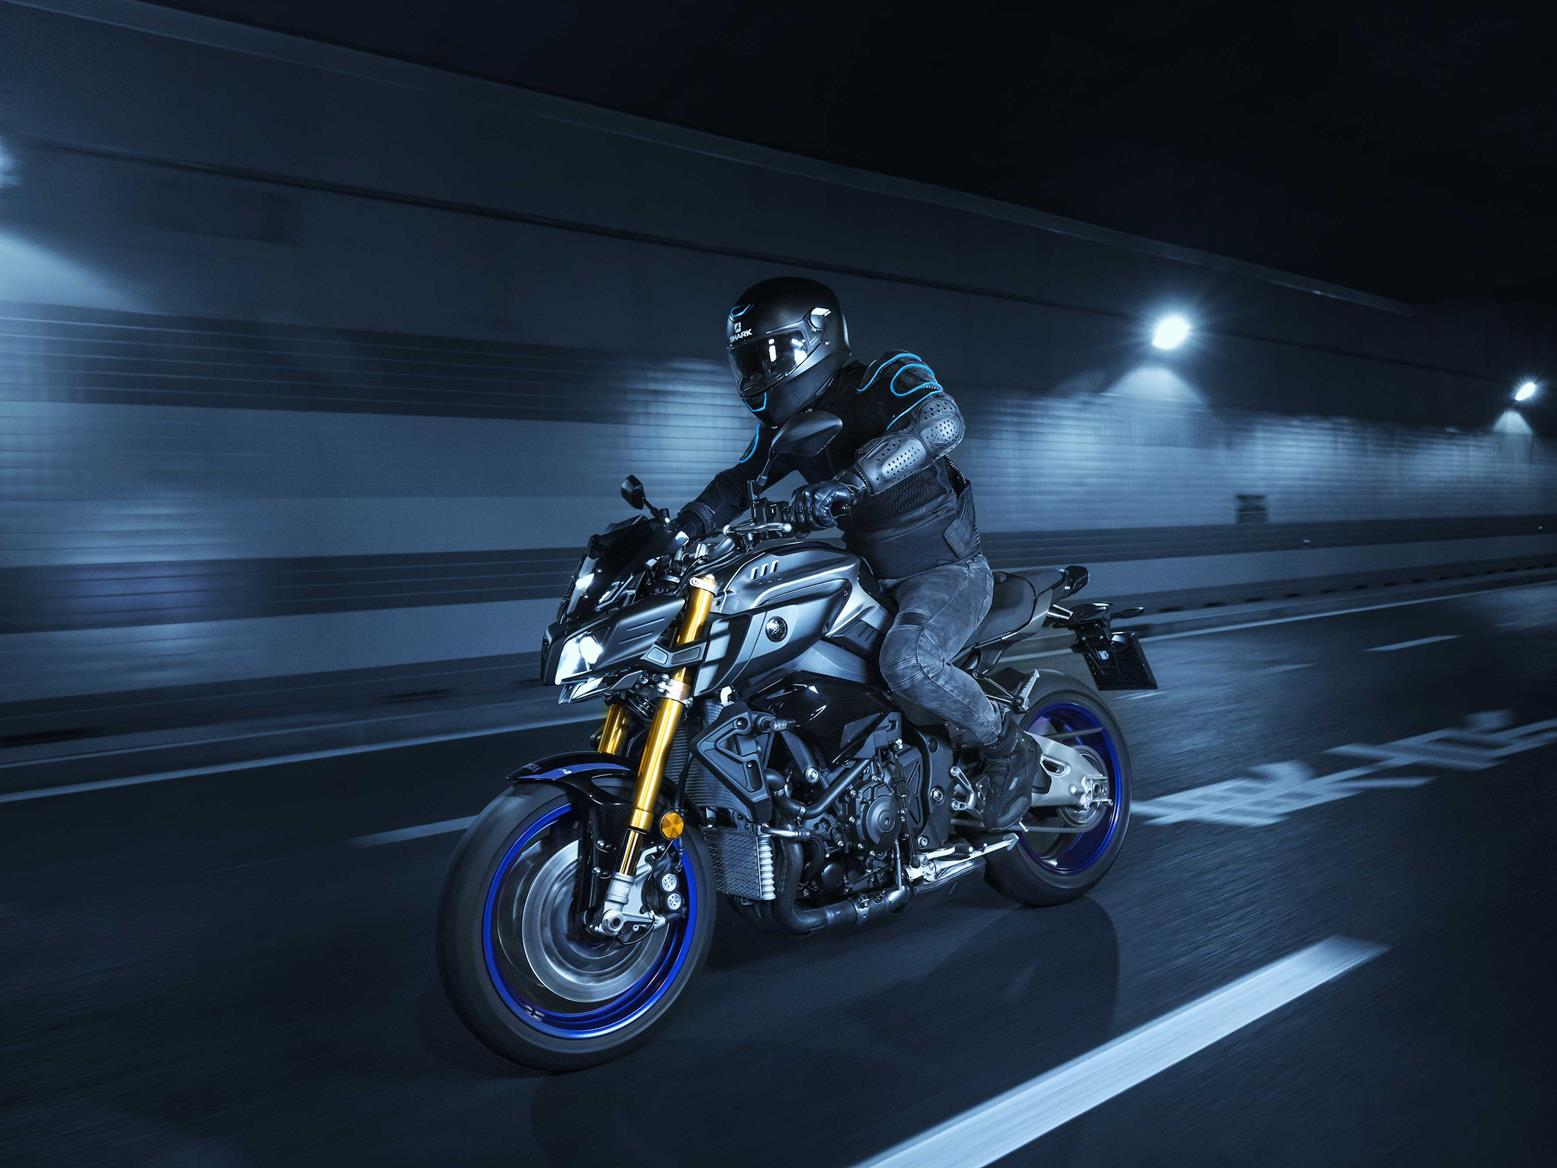 The Yamaha MT-10 is all action